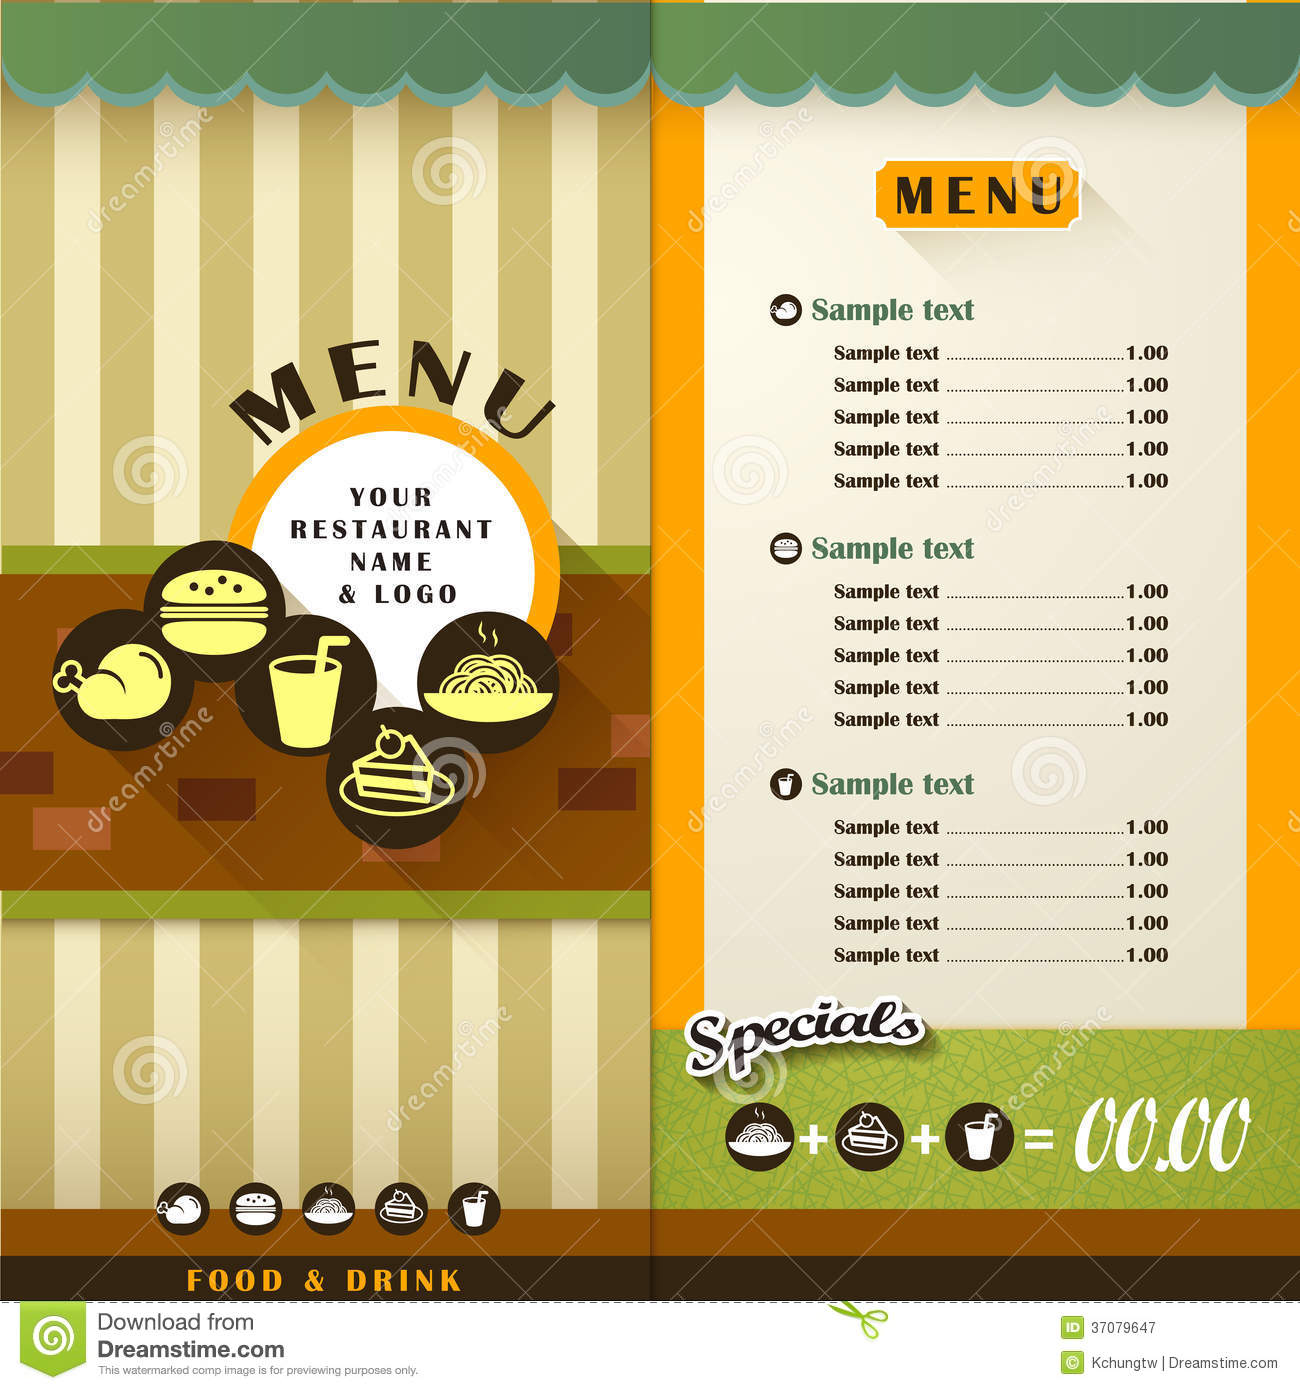 restaurant menu design templates free koni polycode co